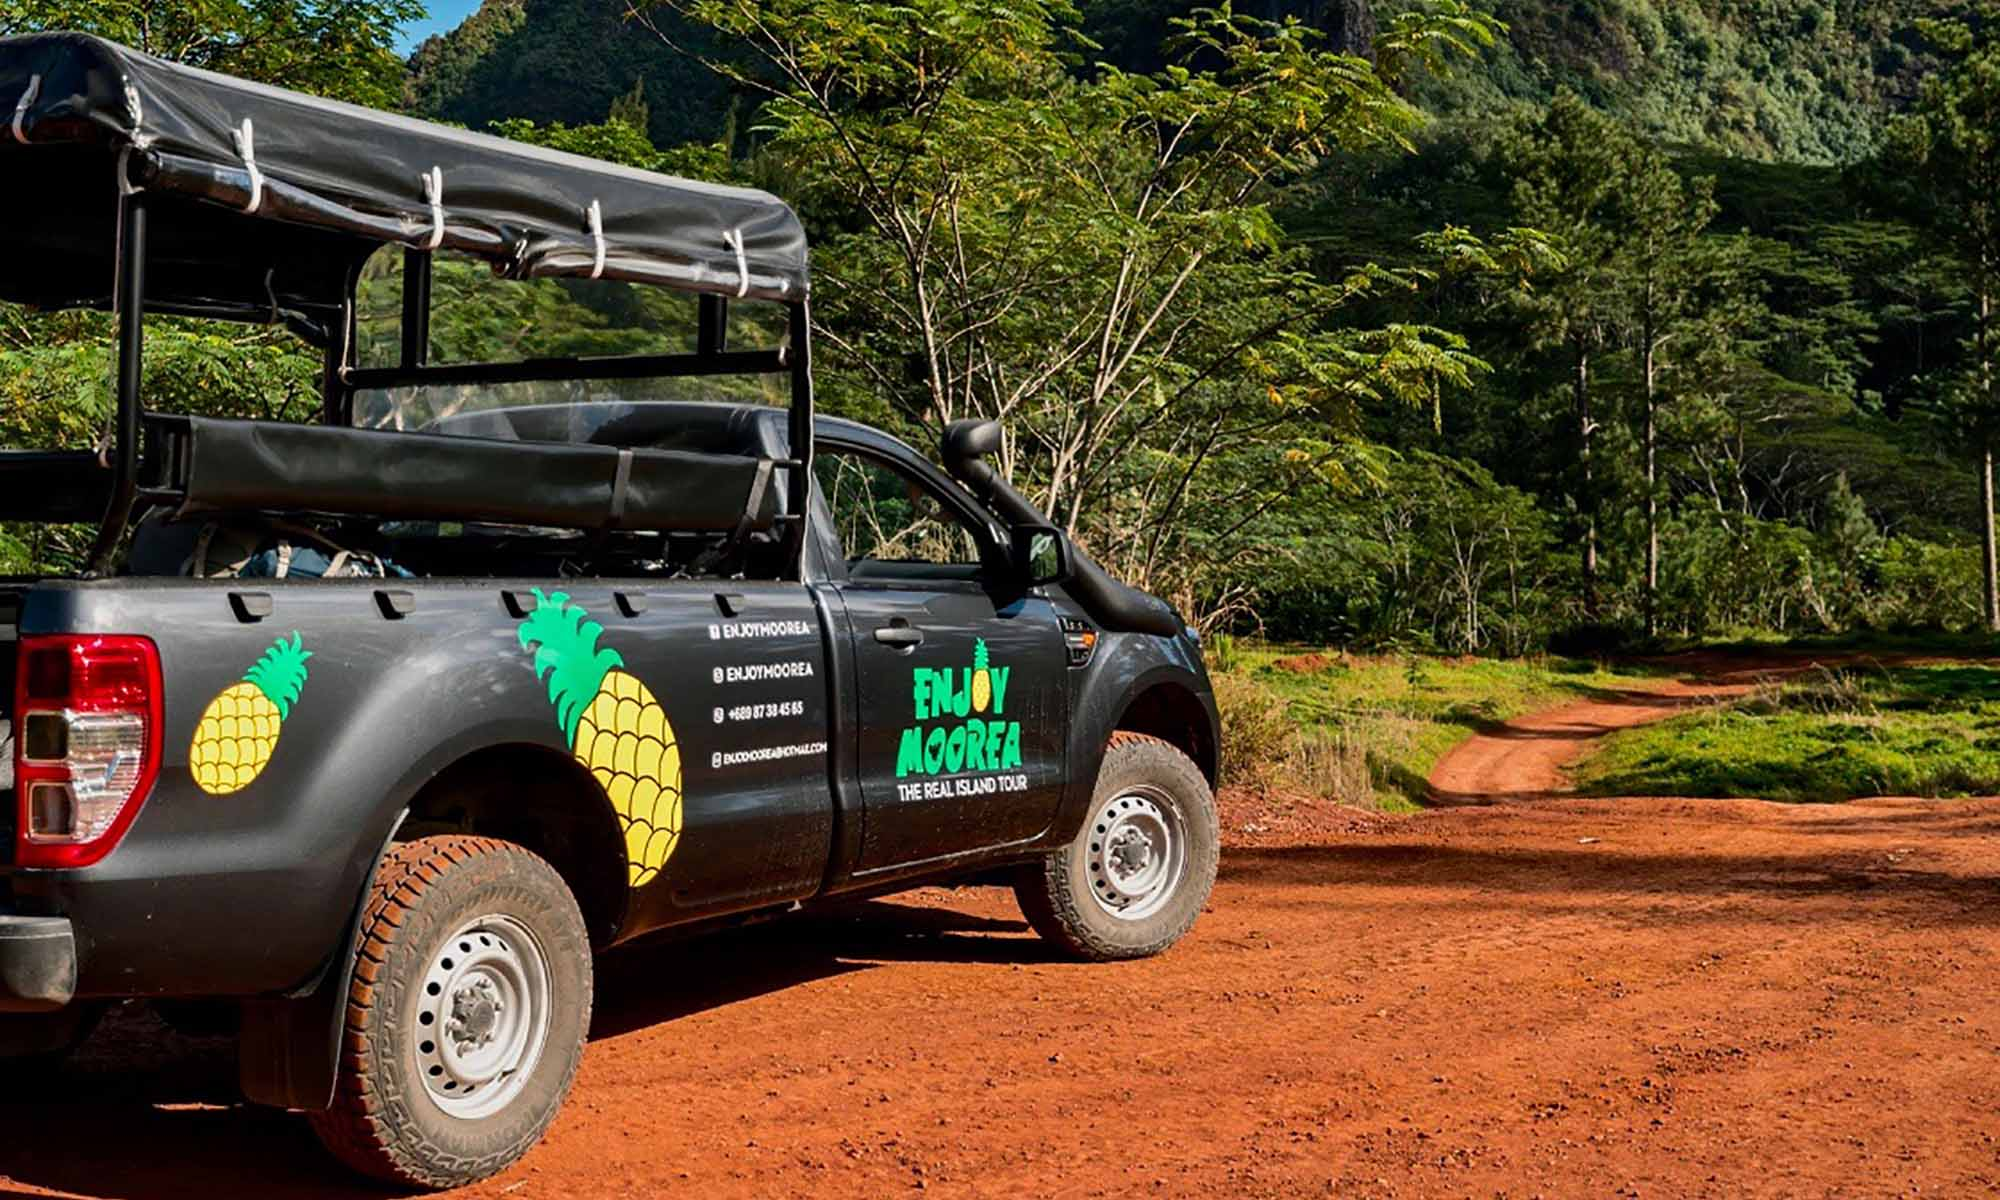 Enjoy Moorea, 4x4 Safari